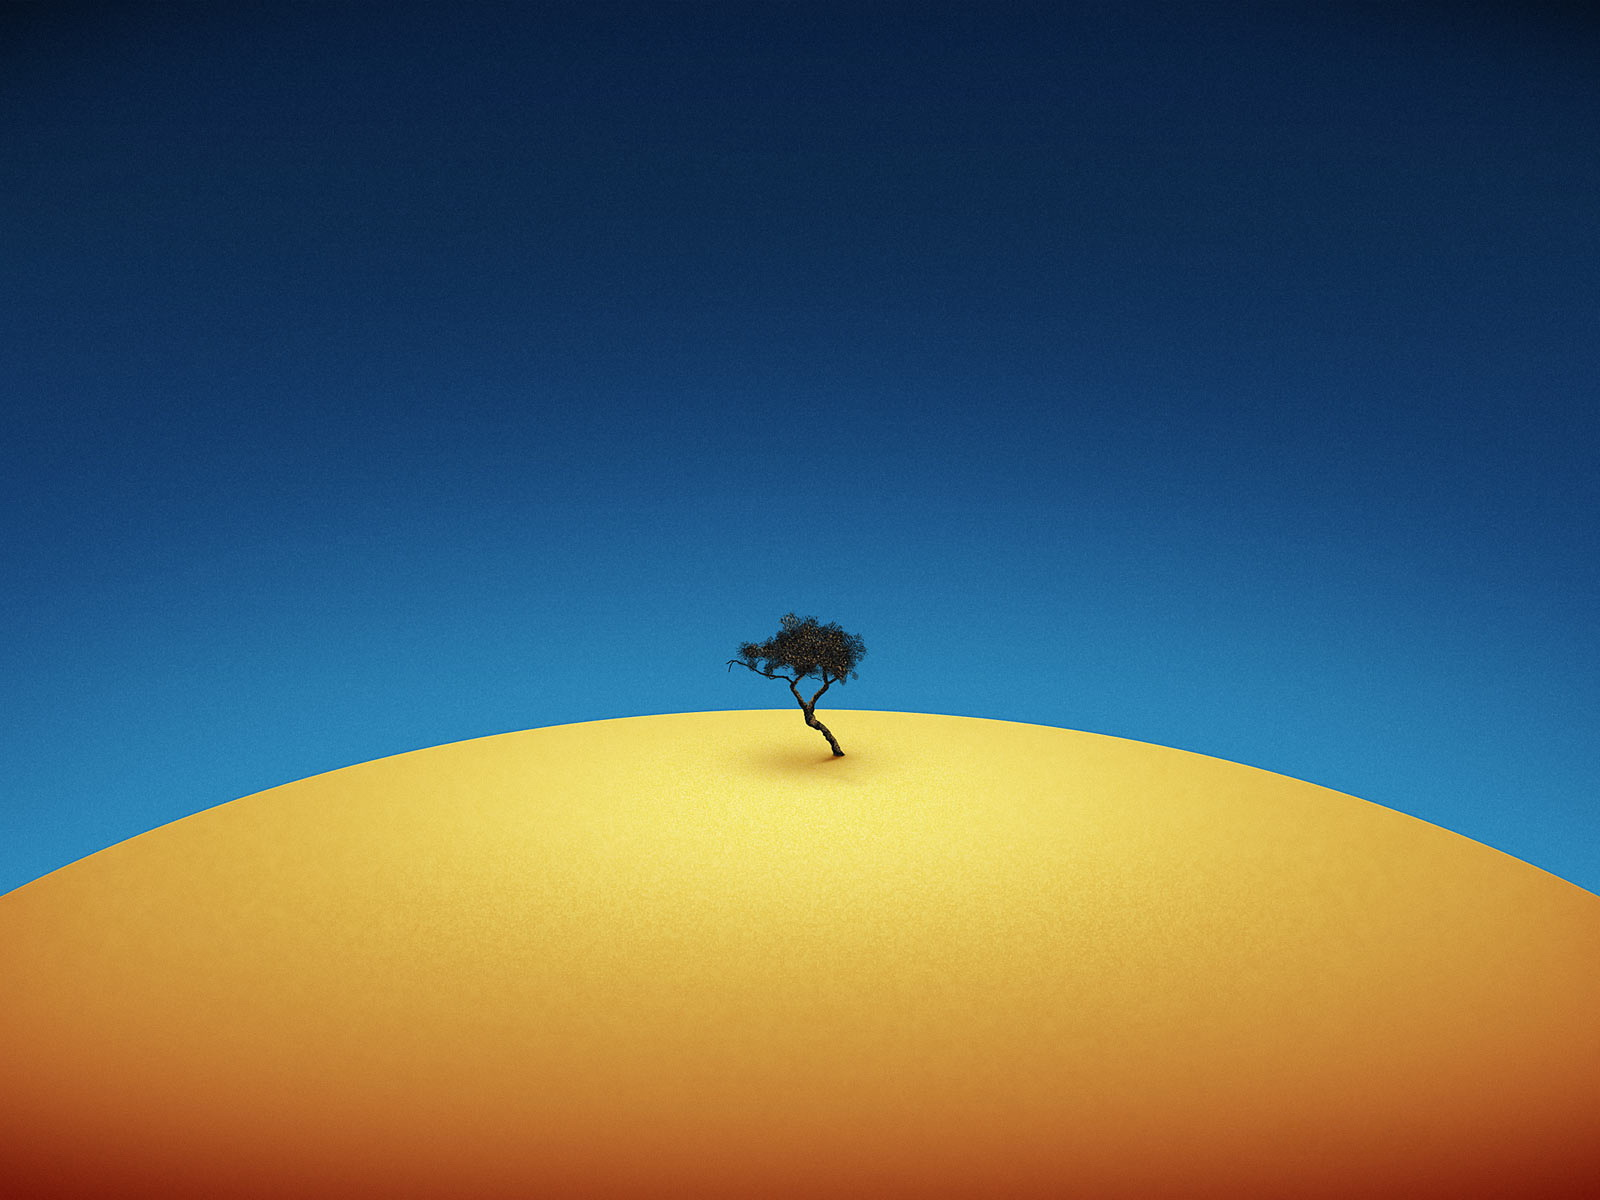 click to free download the wallpaper--Pics of Nature Landscape, an Isolated Tree Among Yellow Desert, the Blue Sky